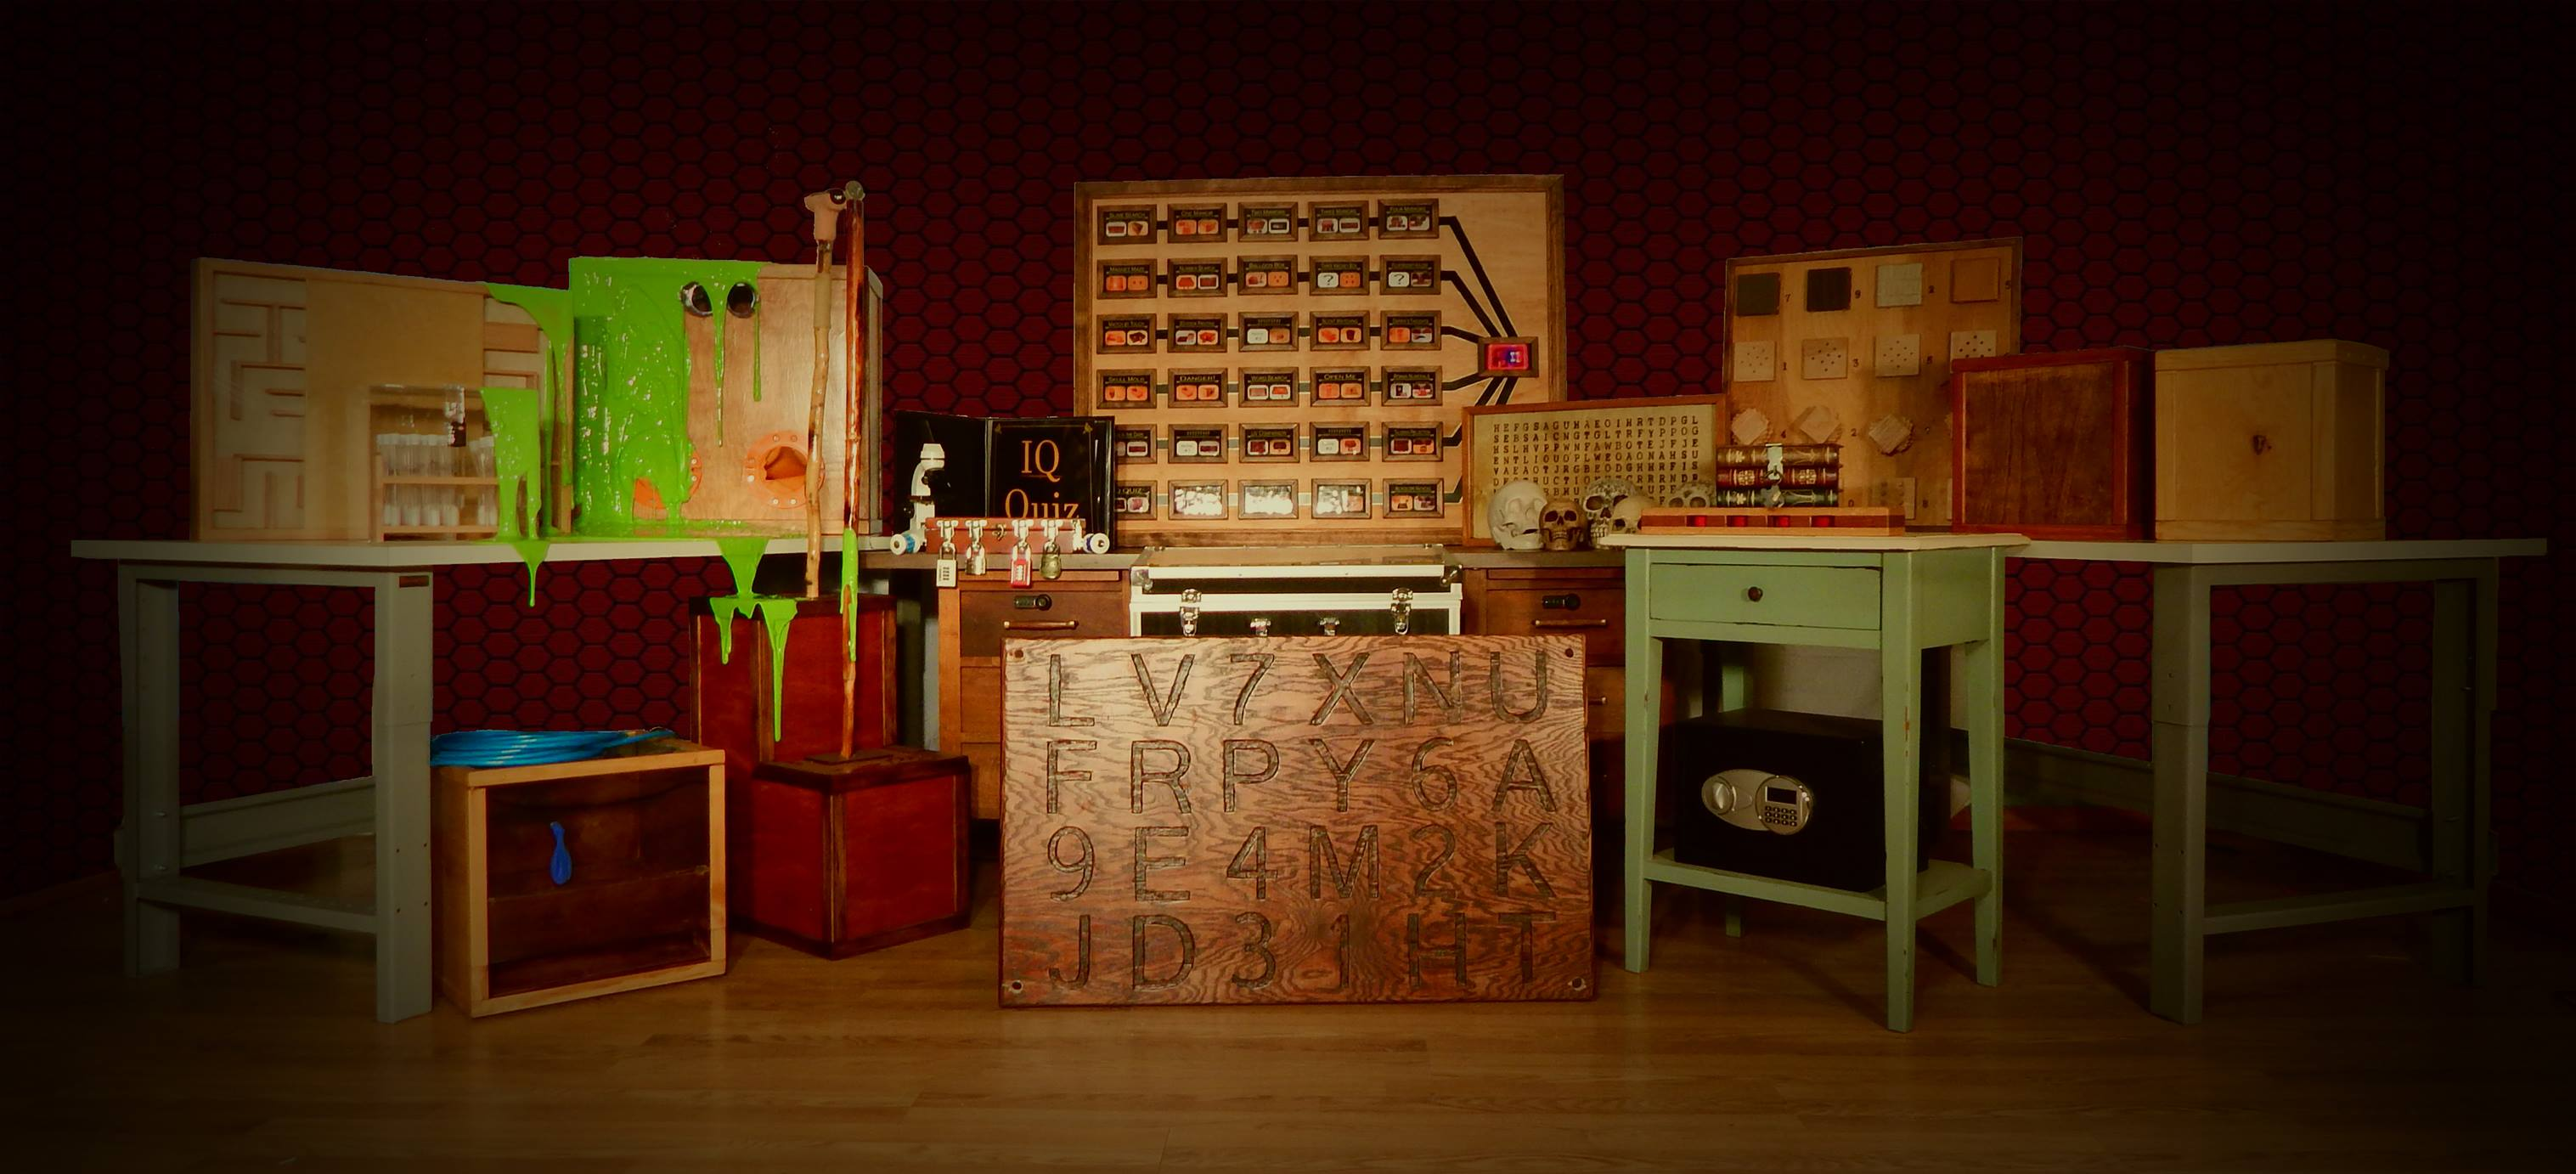 The laboratory escape room features ingenious puzzles for Small room escape 12